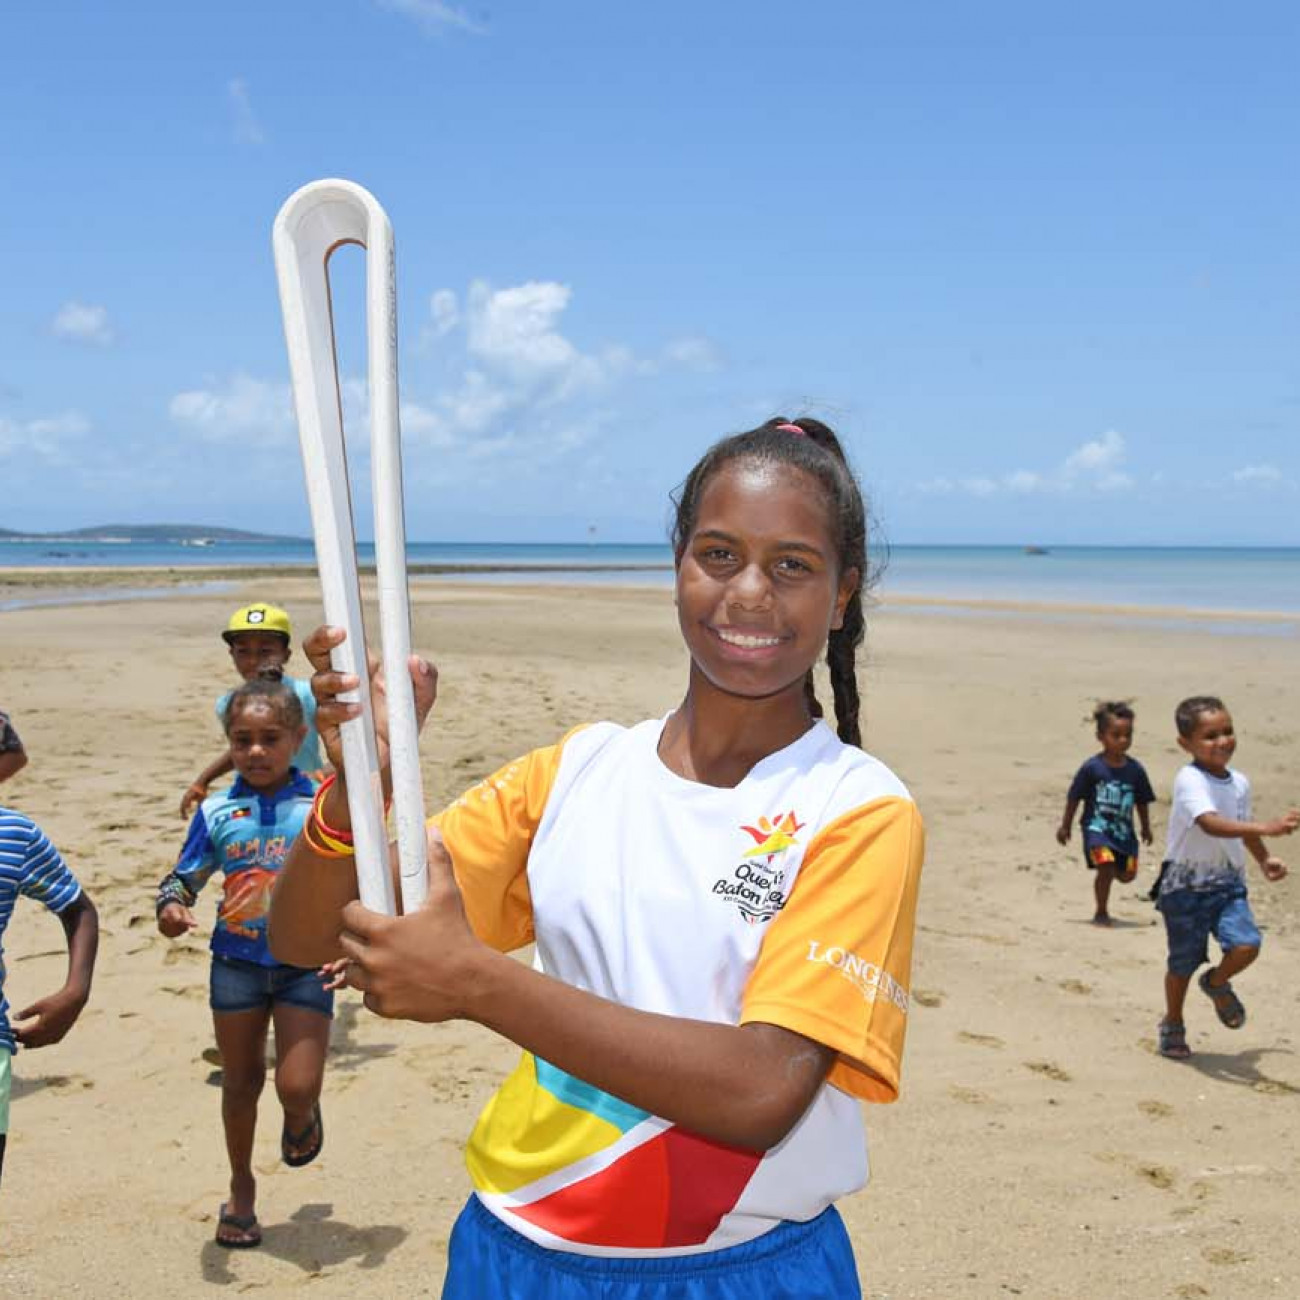 Batonbearer Ikanau Conway with the Queen's Baton and local children at Palm Island